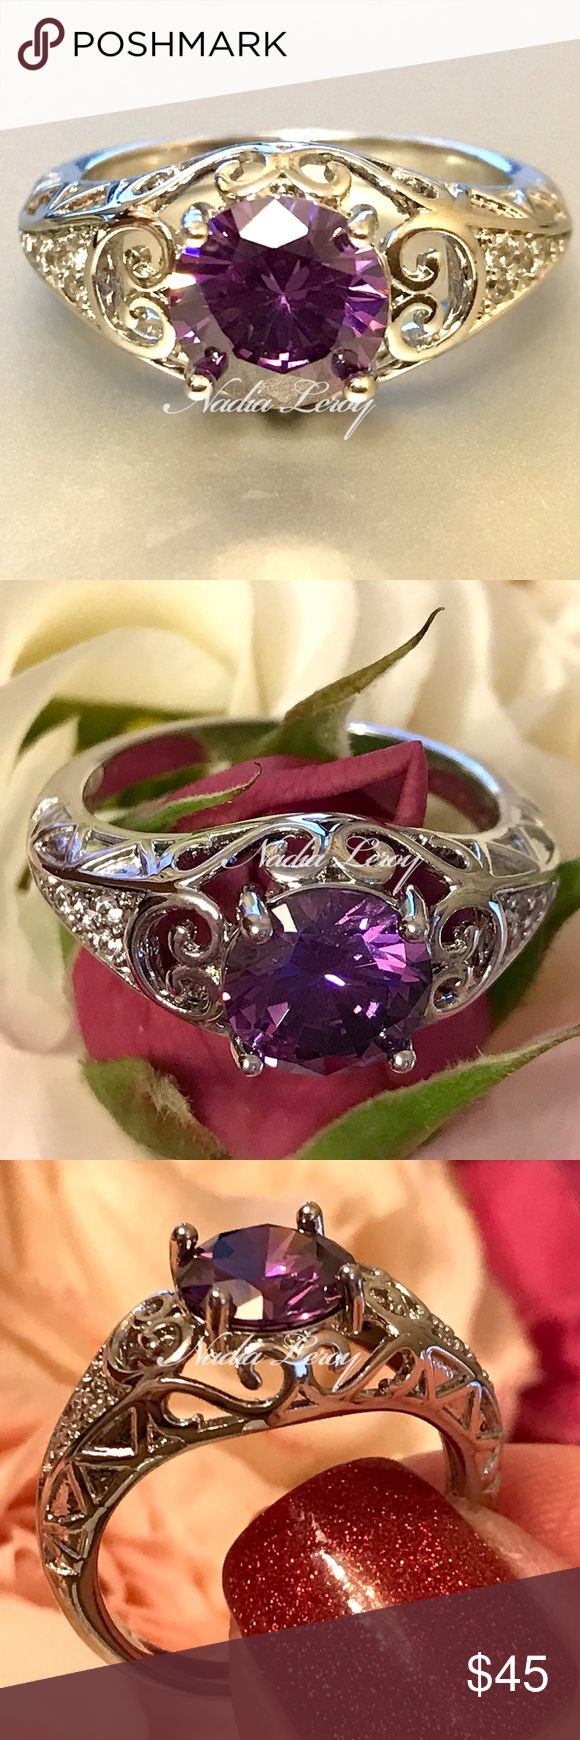 VINTAGE STYLE AMETHYST GO BACK IN TIME... THIS BEAUTIFUL 1.8 CARAT AMETHYST SET IN STERLING SILVER! THE DETAIL OF ETCHING AND SWIRLS MAKE THIS TRULY UNIQUE STONE MEASURES APPROX 10MM SUZE 9 includes black velvet gift box NADIA LEROY Jewelry Rings